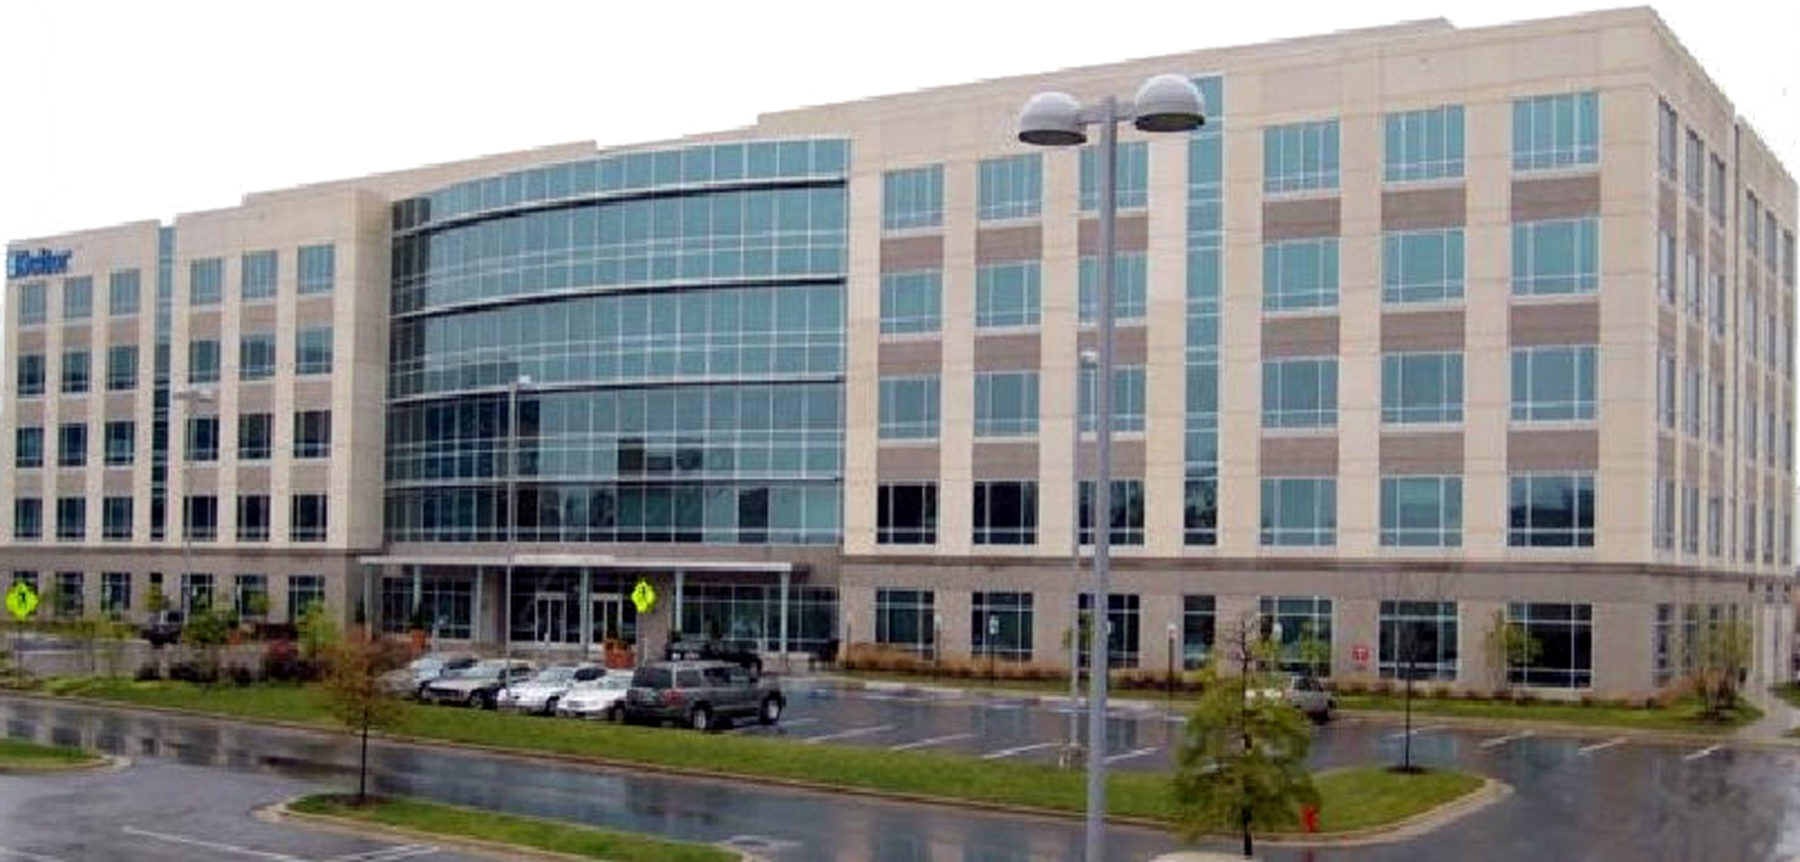 National Business Park Building 302, Army Corps Research Data Center